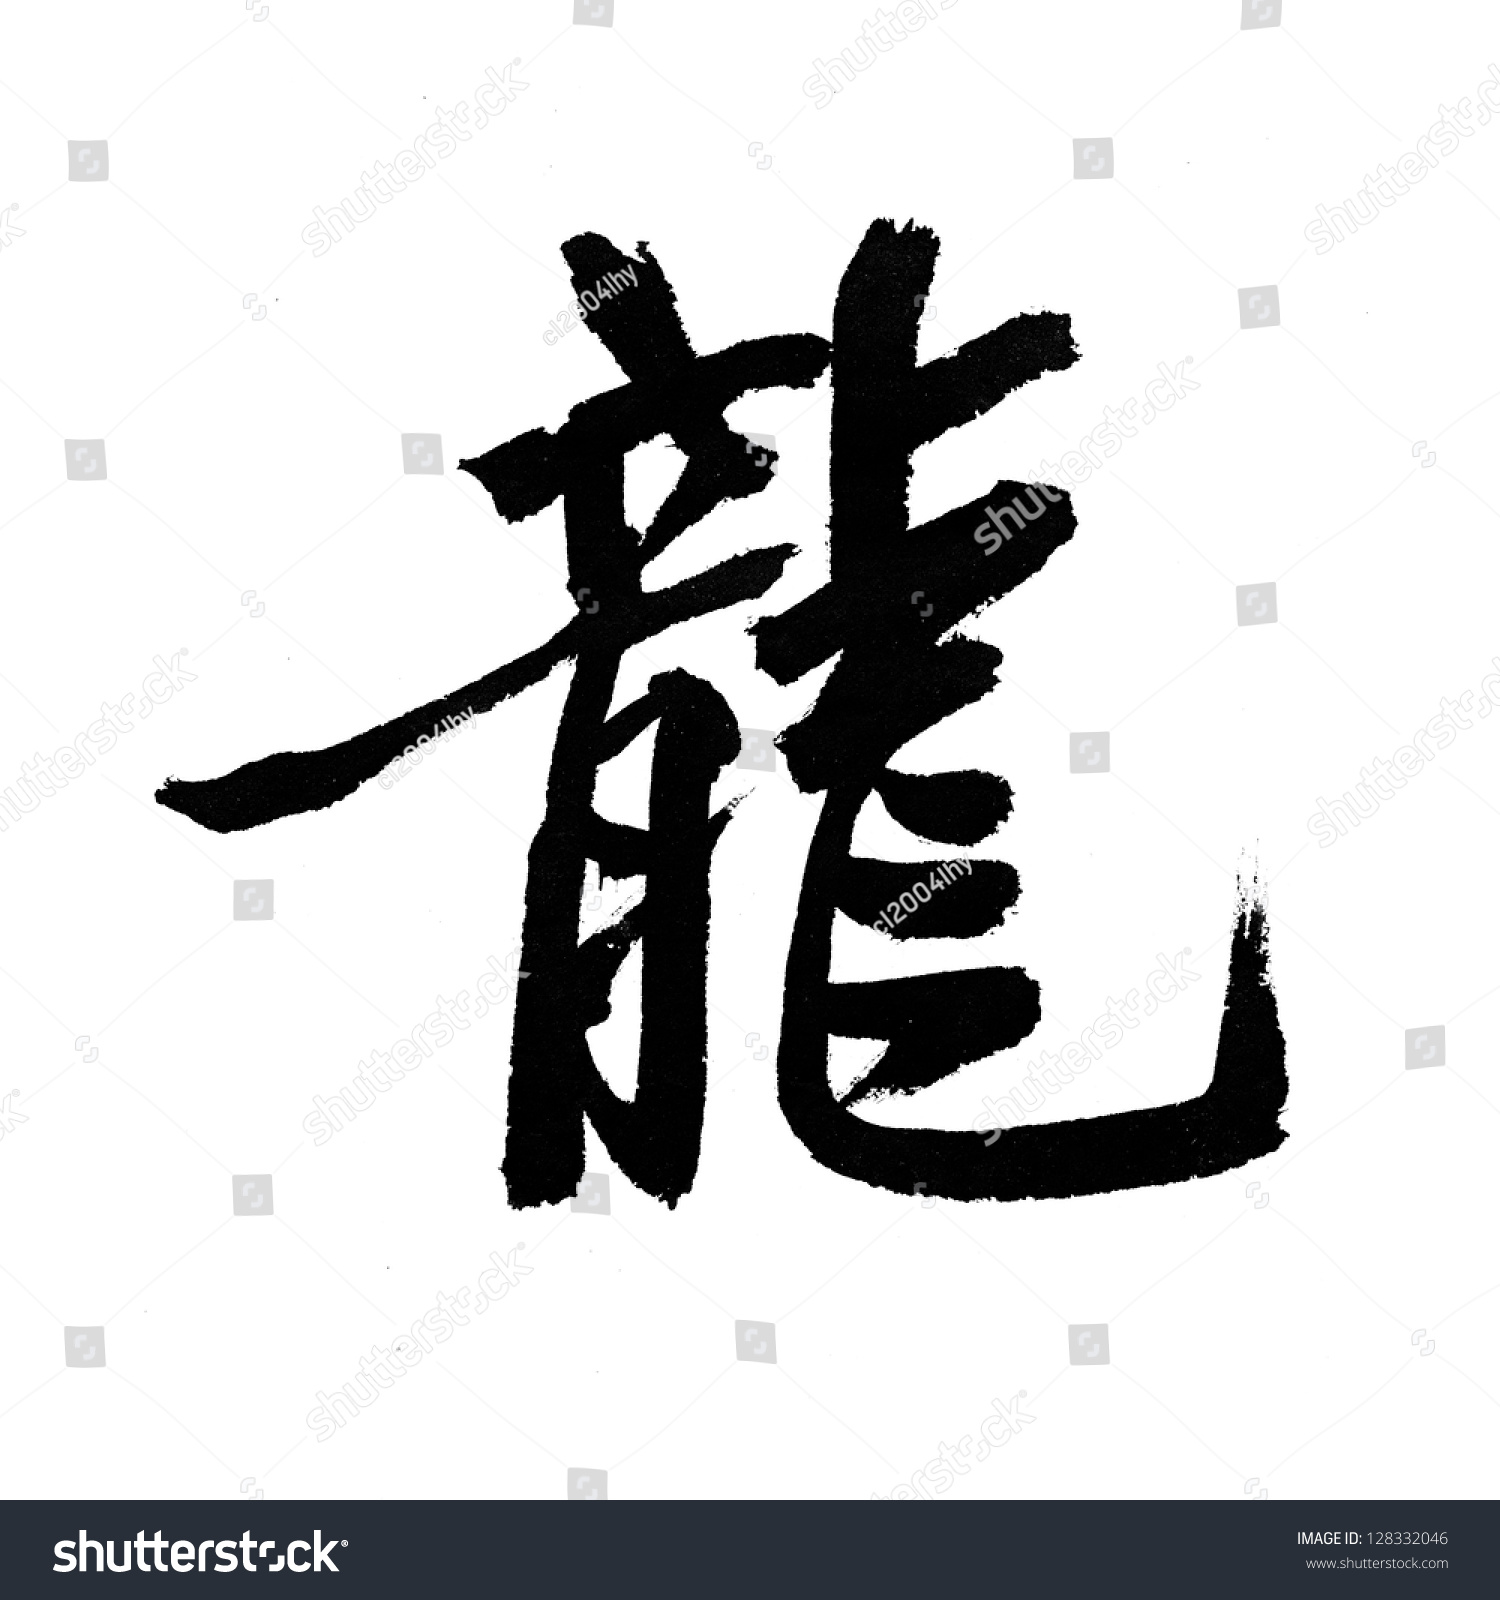 Chinese symbol meaning images symbol and sign ideas what is the chinese symbol for dragon chinese dragon clipart chinese characters long means chinese dragon biocorpaavc